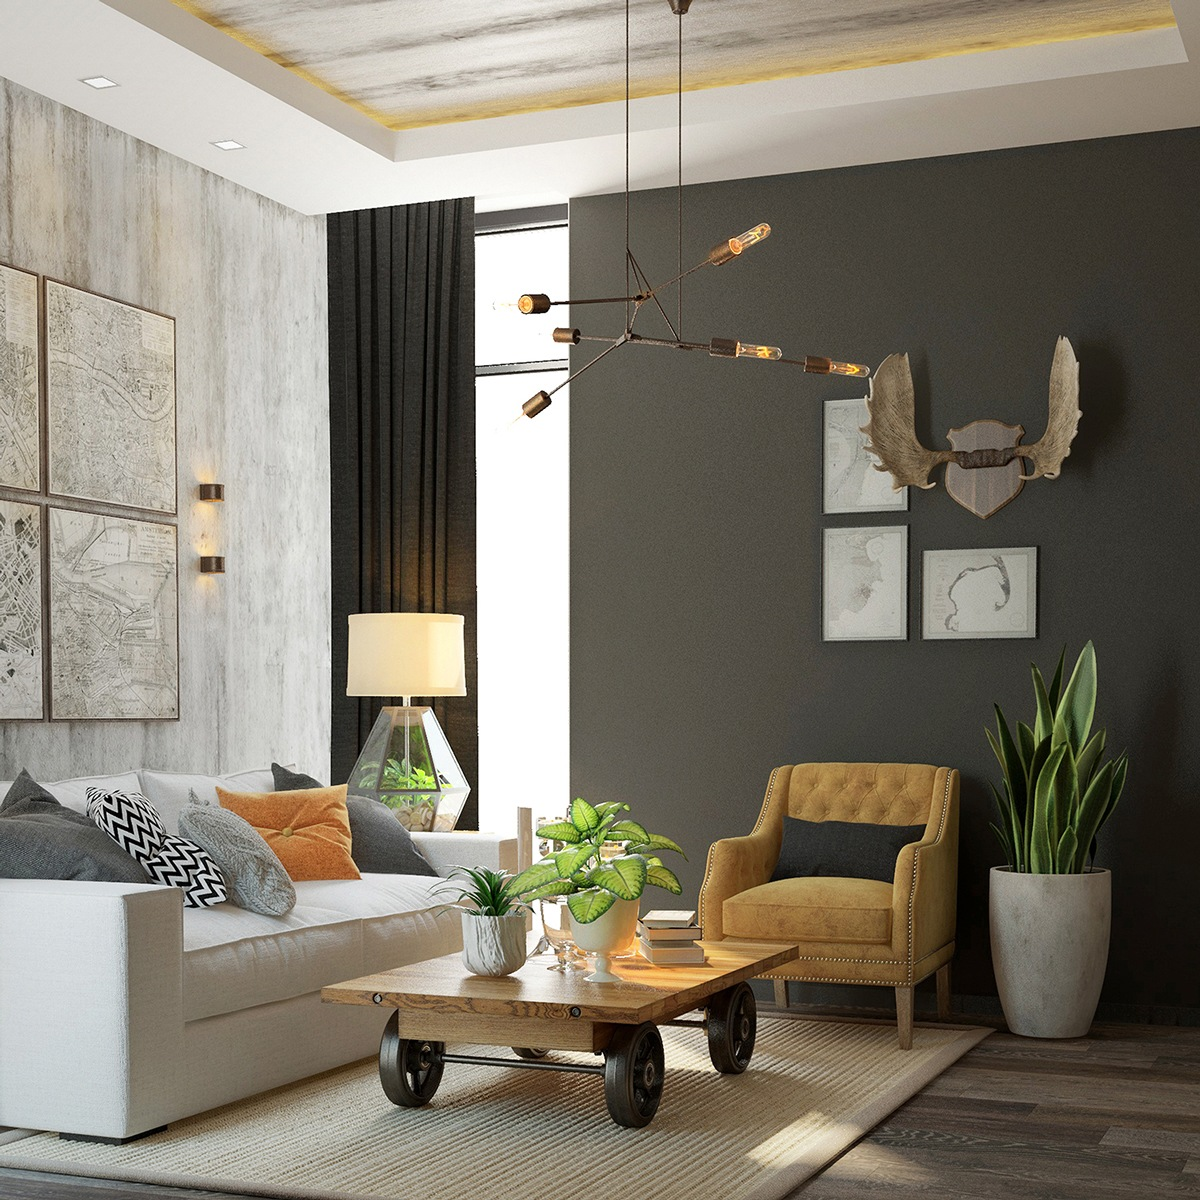 An Industrial Home With Warm Hues: Interior Design Ideas